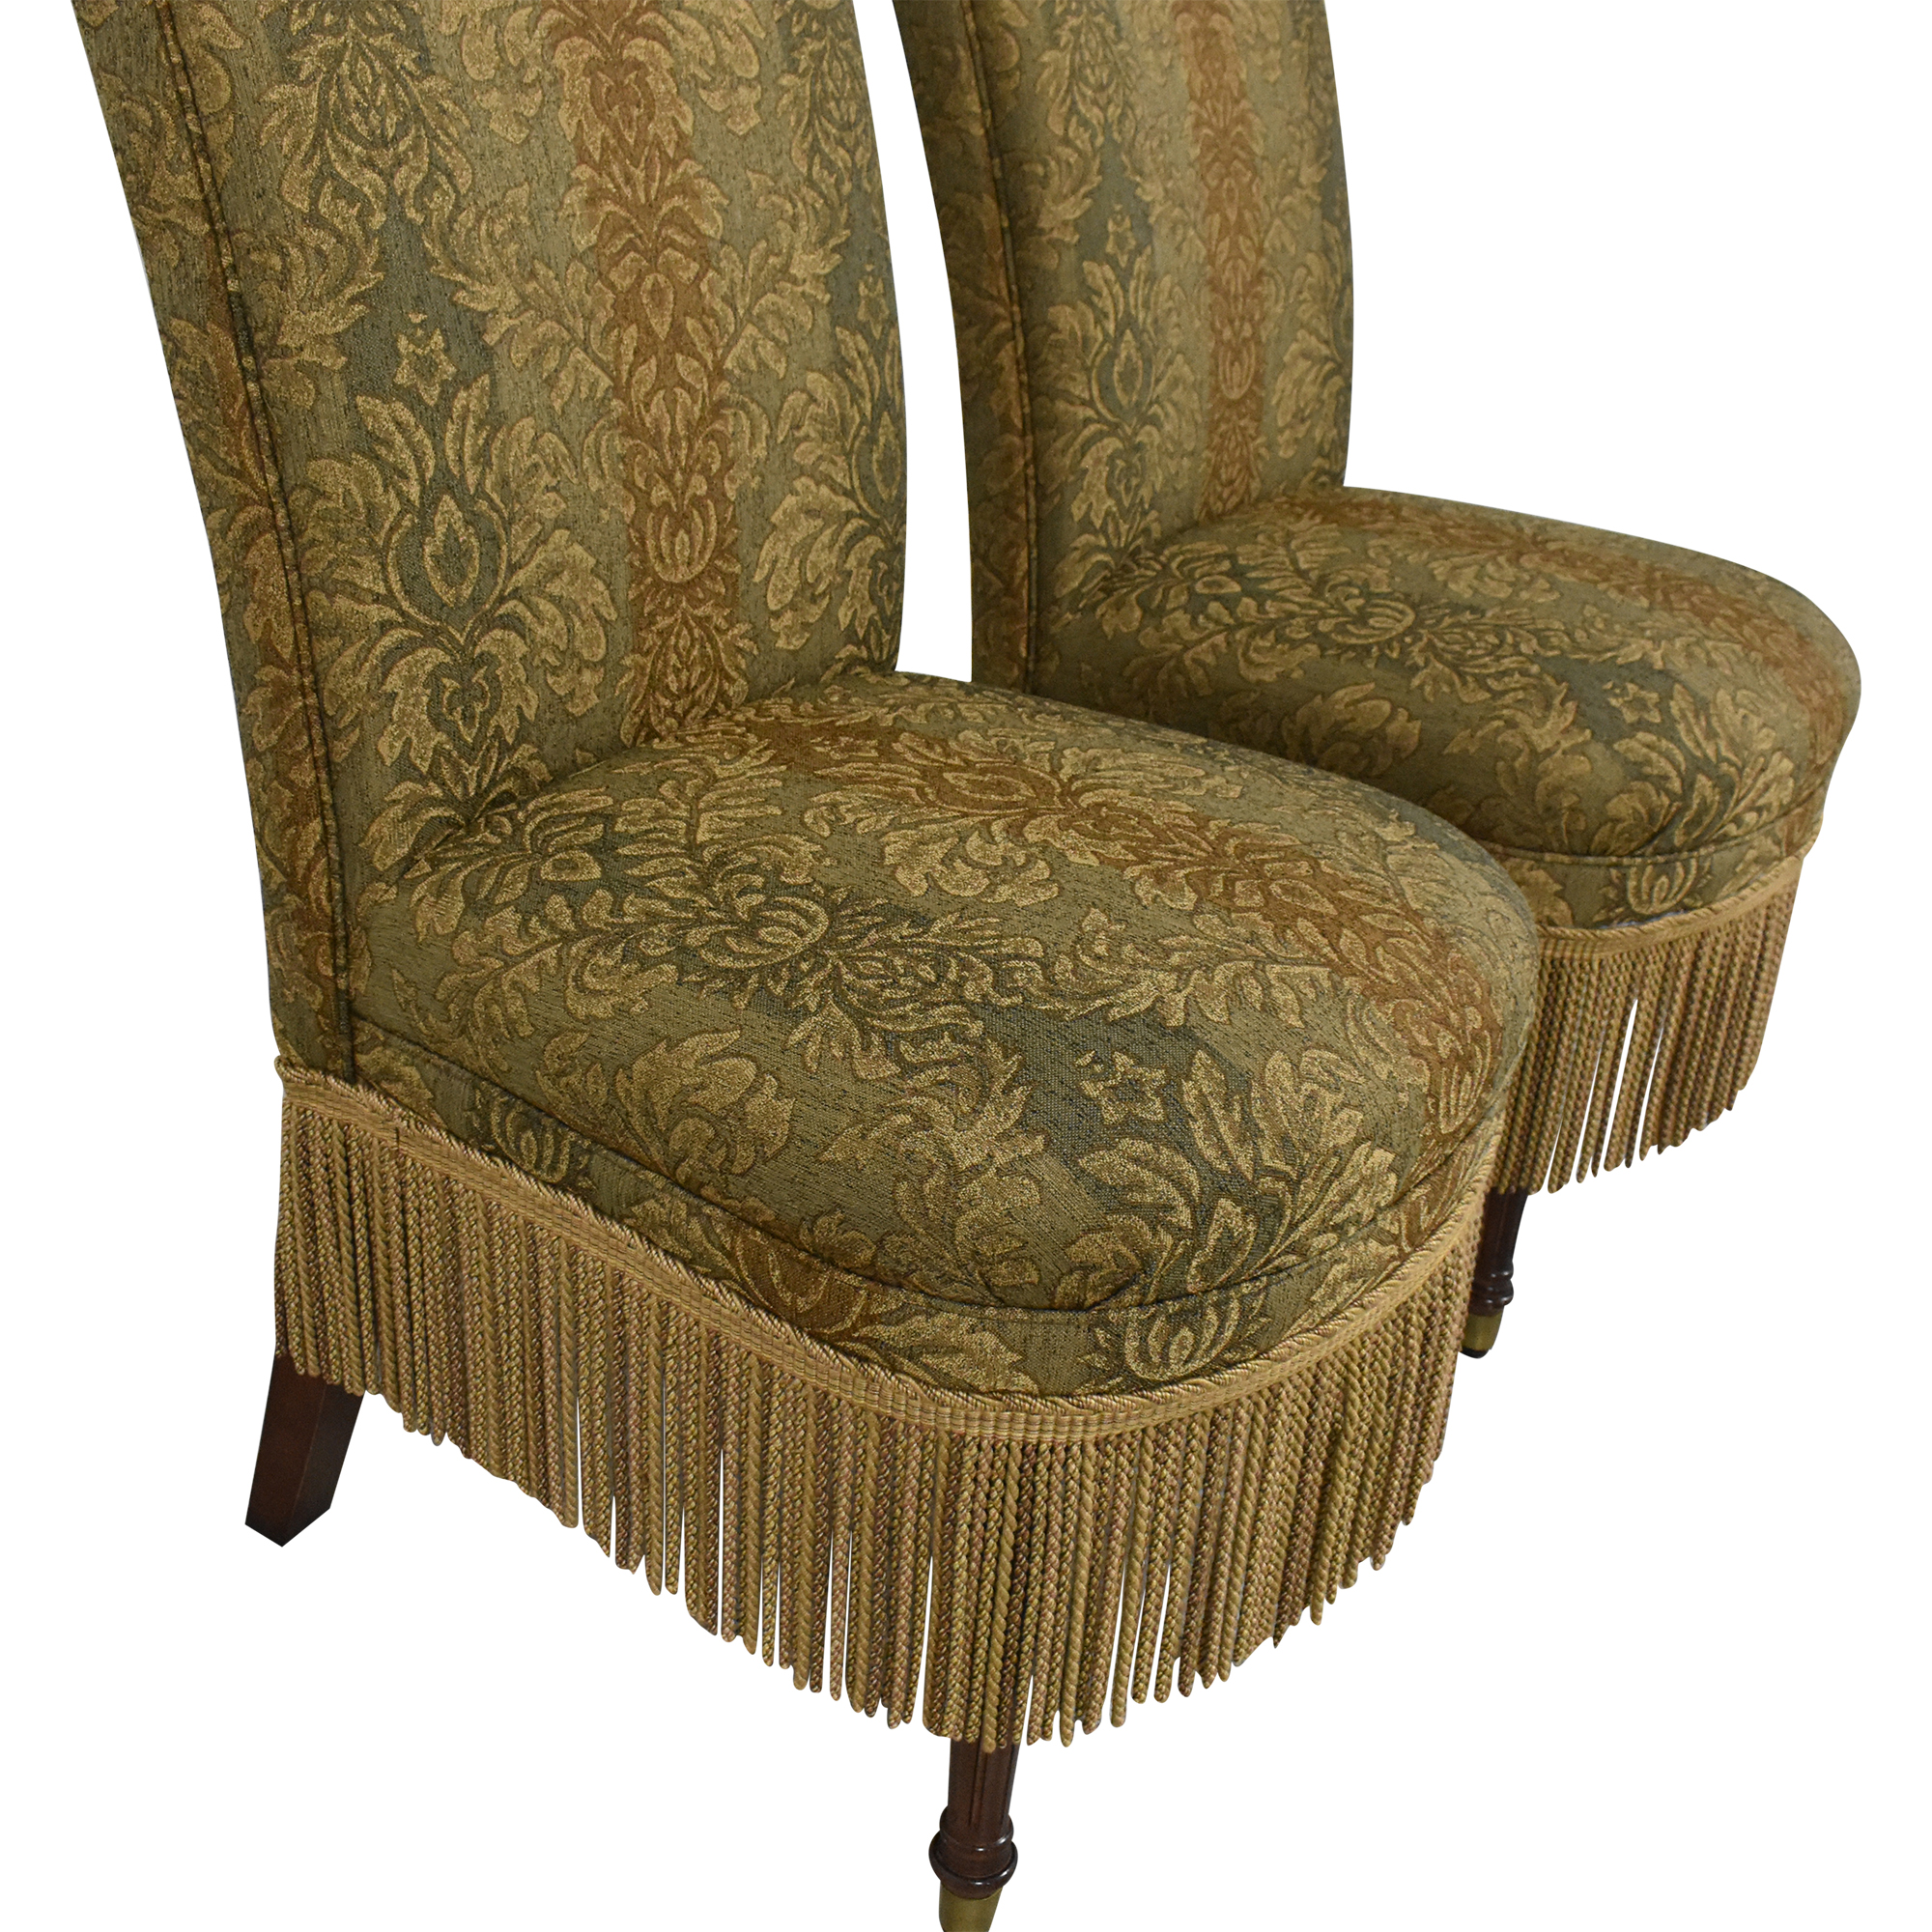 Designmaster Furniture Designmaster Furniture Tasseled Dining Chairs second hand